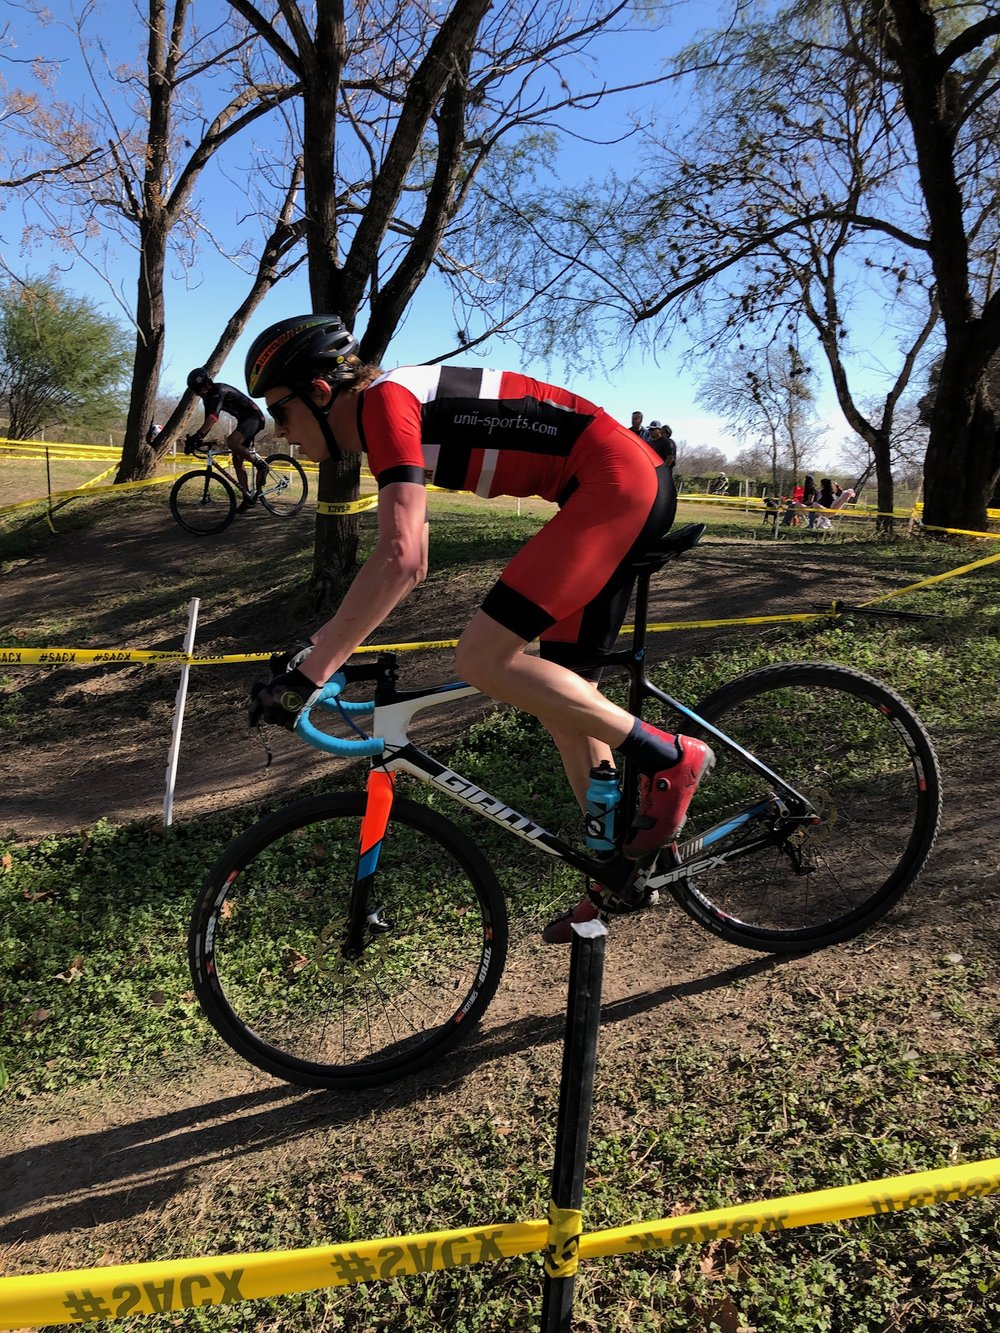 Casey Maron - MechanicCasey is a full-time student at Texas State University. He started cycling in high school with his local NICA team and has been hooked on racing ever since. Recently, his focus has been cyclocross, where he is currently the U23 and Cat 2 State Champion in Texas. Casey loves candy, especially Sour Patch Kids and Dr. Pepper.